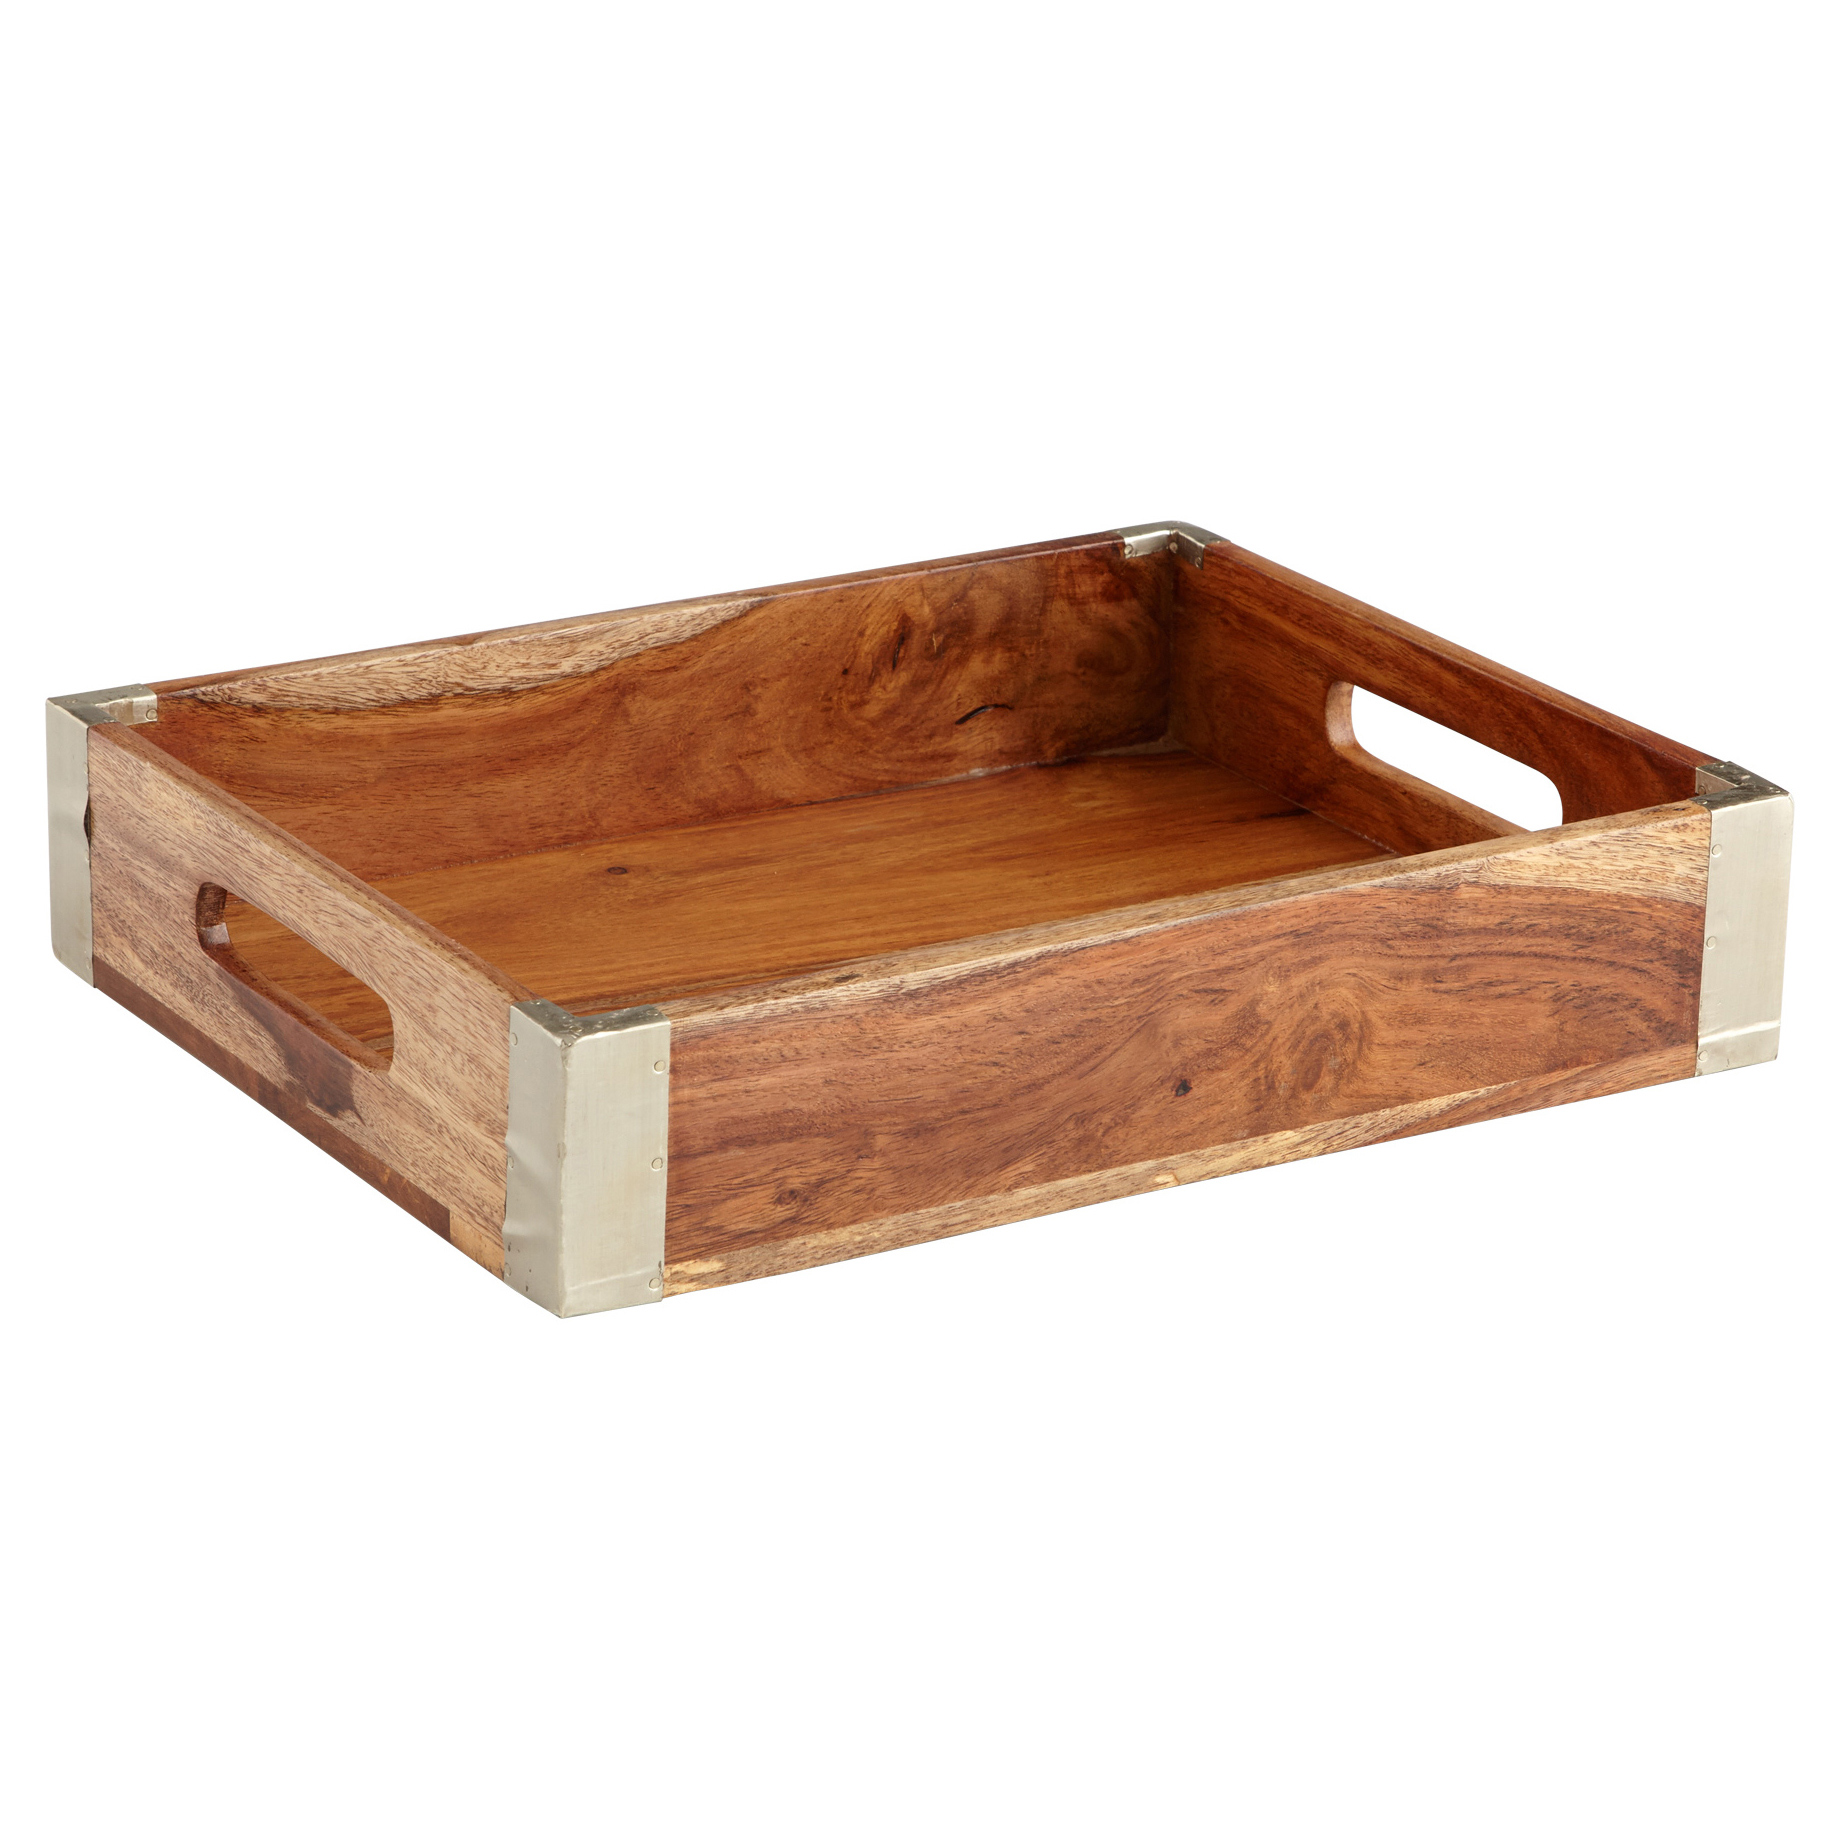 Gordo Rustic Lodge Reclaimed Wood Tray